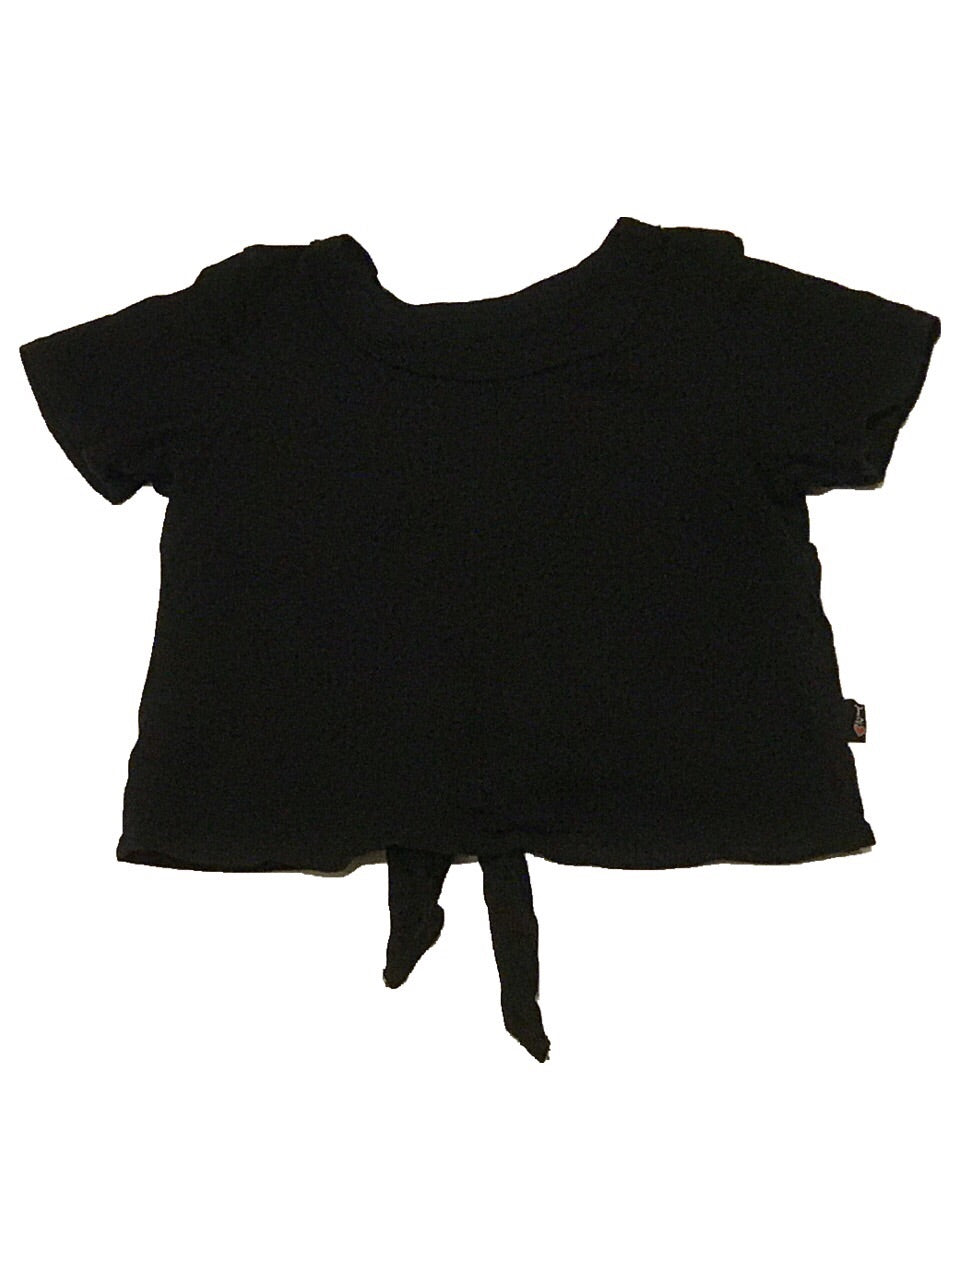 T2Love Short Sleeve Black Tie Back Top